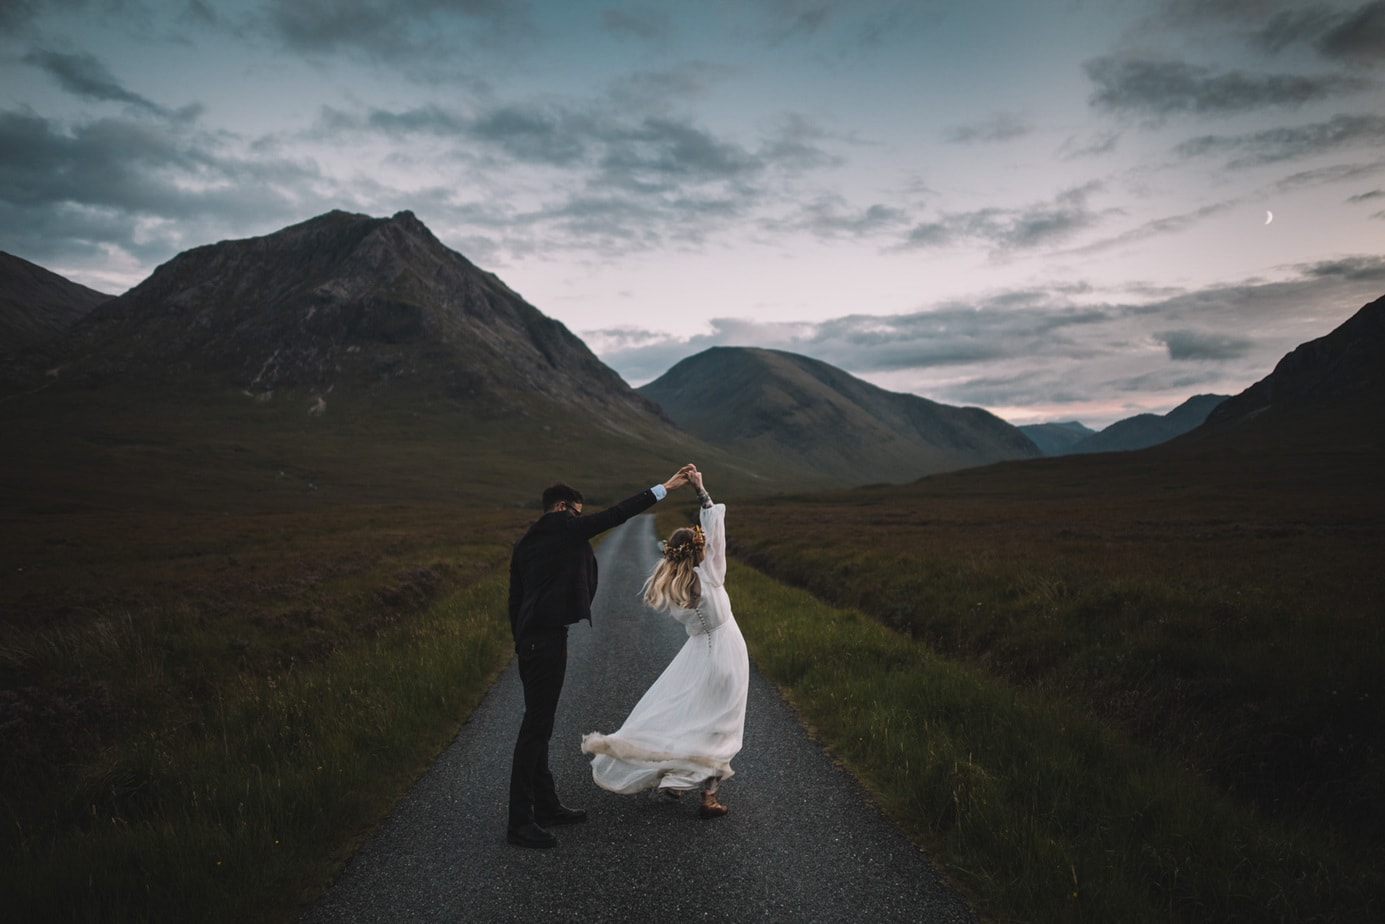 Scotland elopment. Set on the road to Glen Etive, A bride is twirling around her groom at blue hour and a little moon can be seen between the hills.